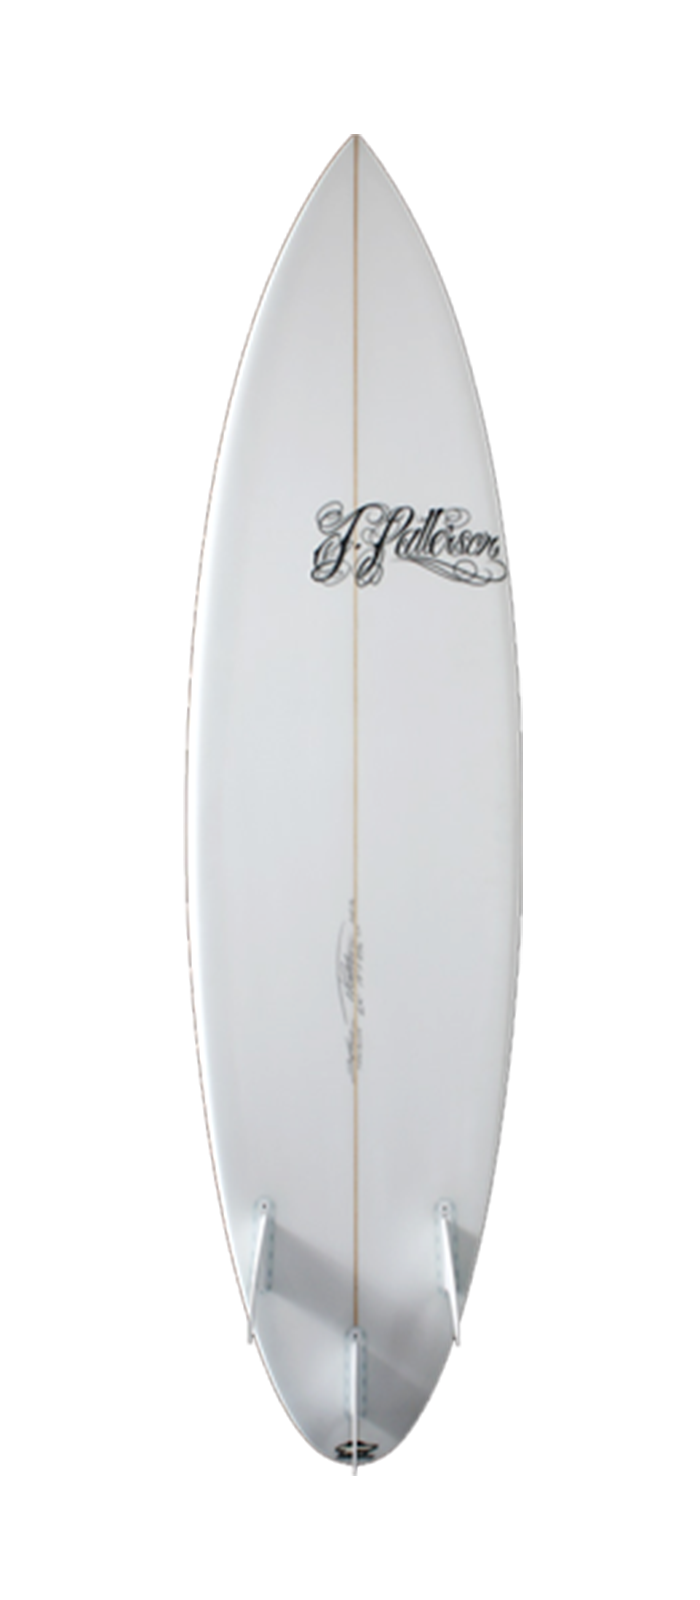 Step Up surfboard model bottom